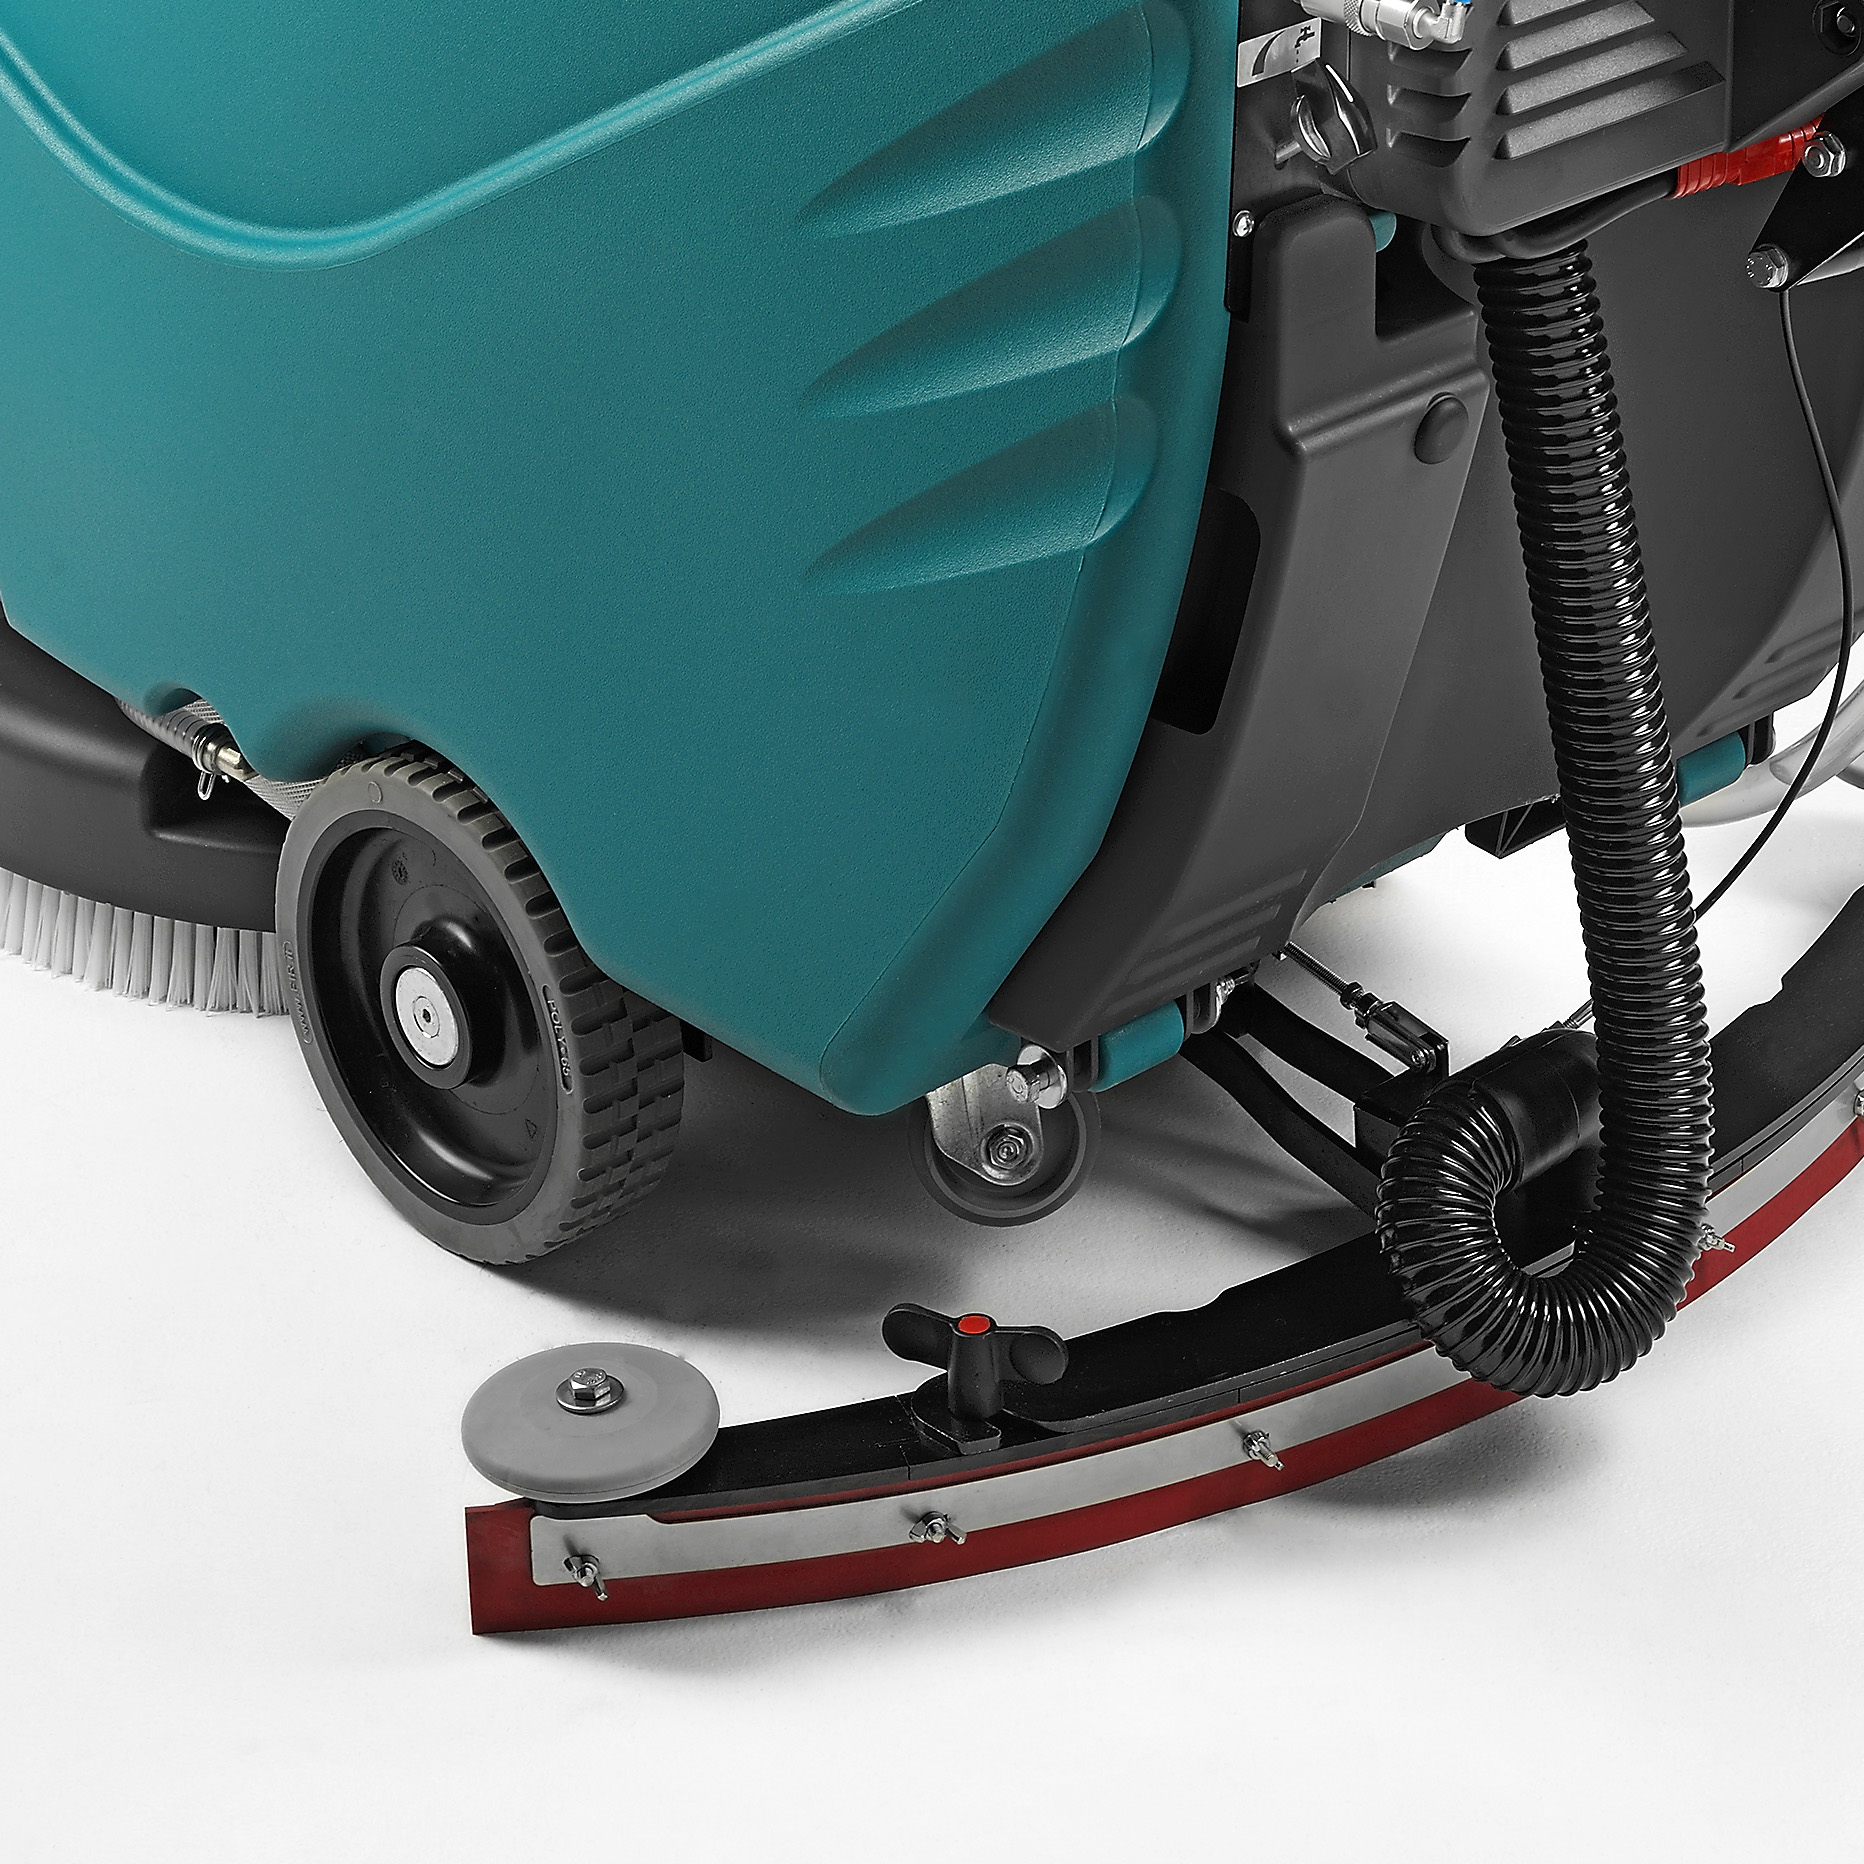 HIGH PERFORMANCE SQUEEGEE & LARGE WHEELS